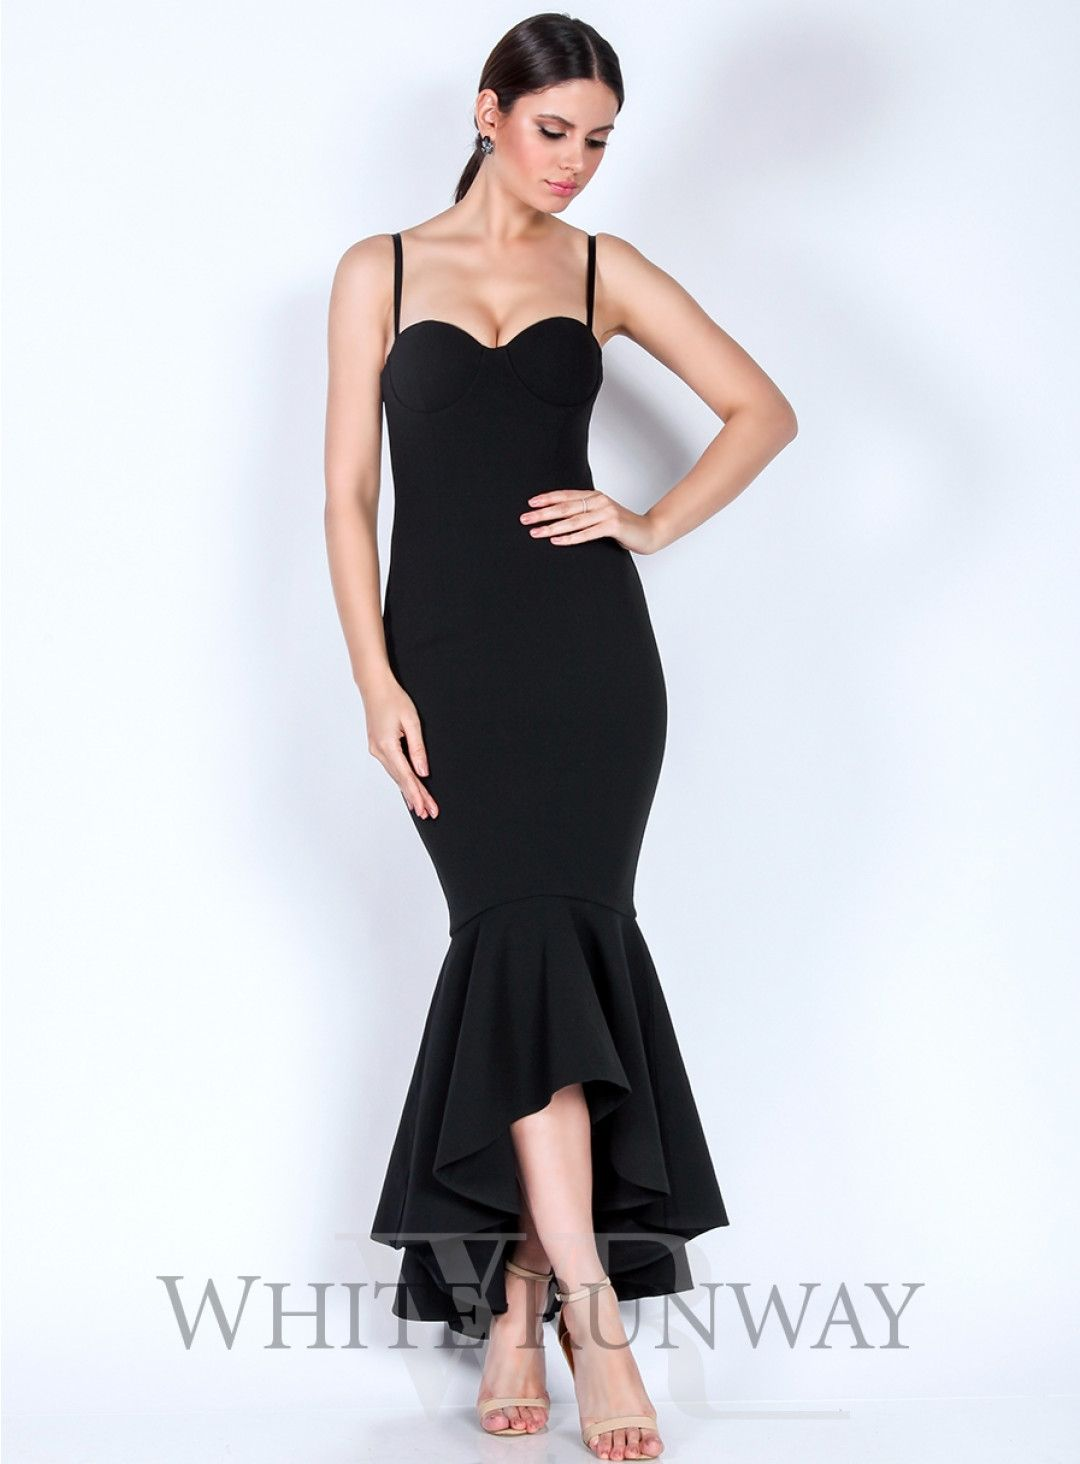 Melissa dress a stunning gown by giselle u sophia featuring a